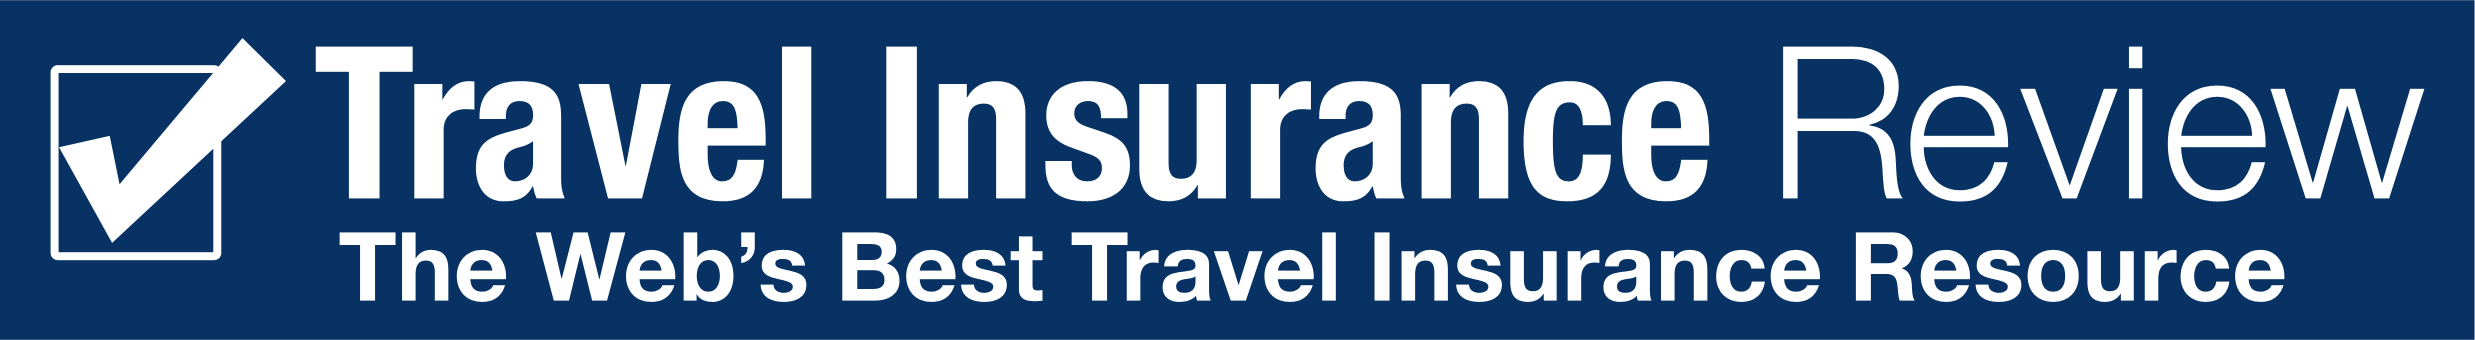 http://www.travelinsurancereview.net/adventure-travel-insurance/